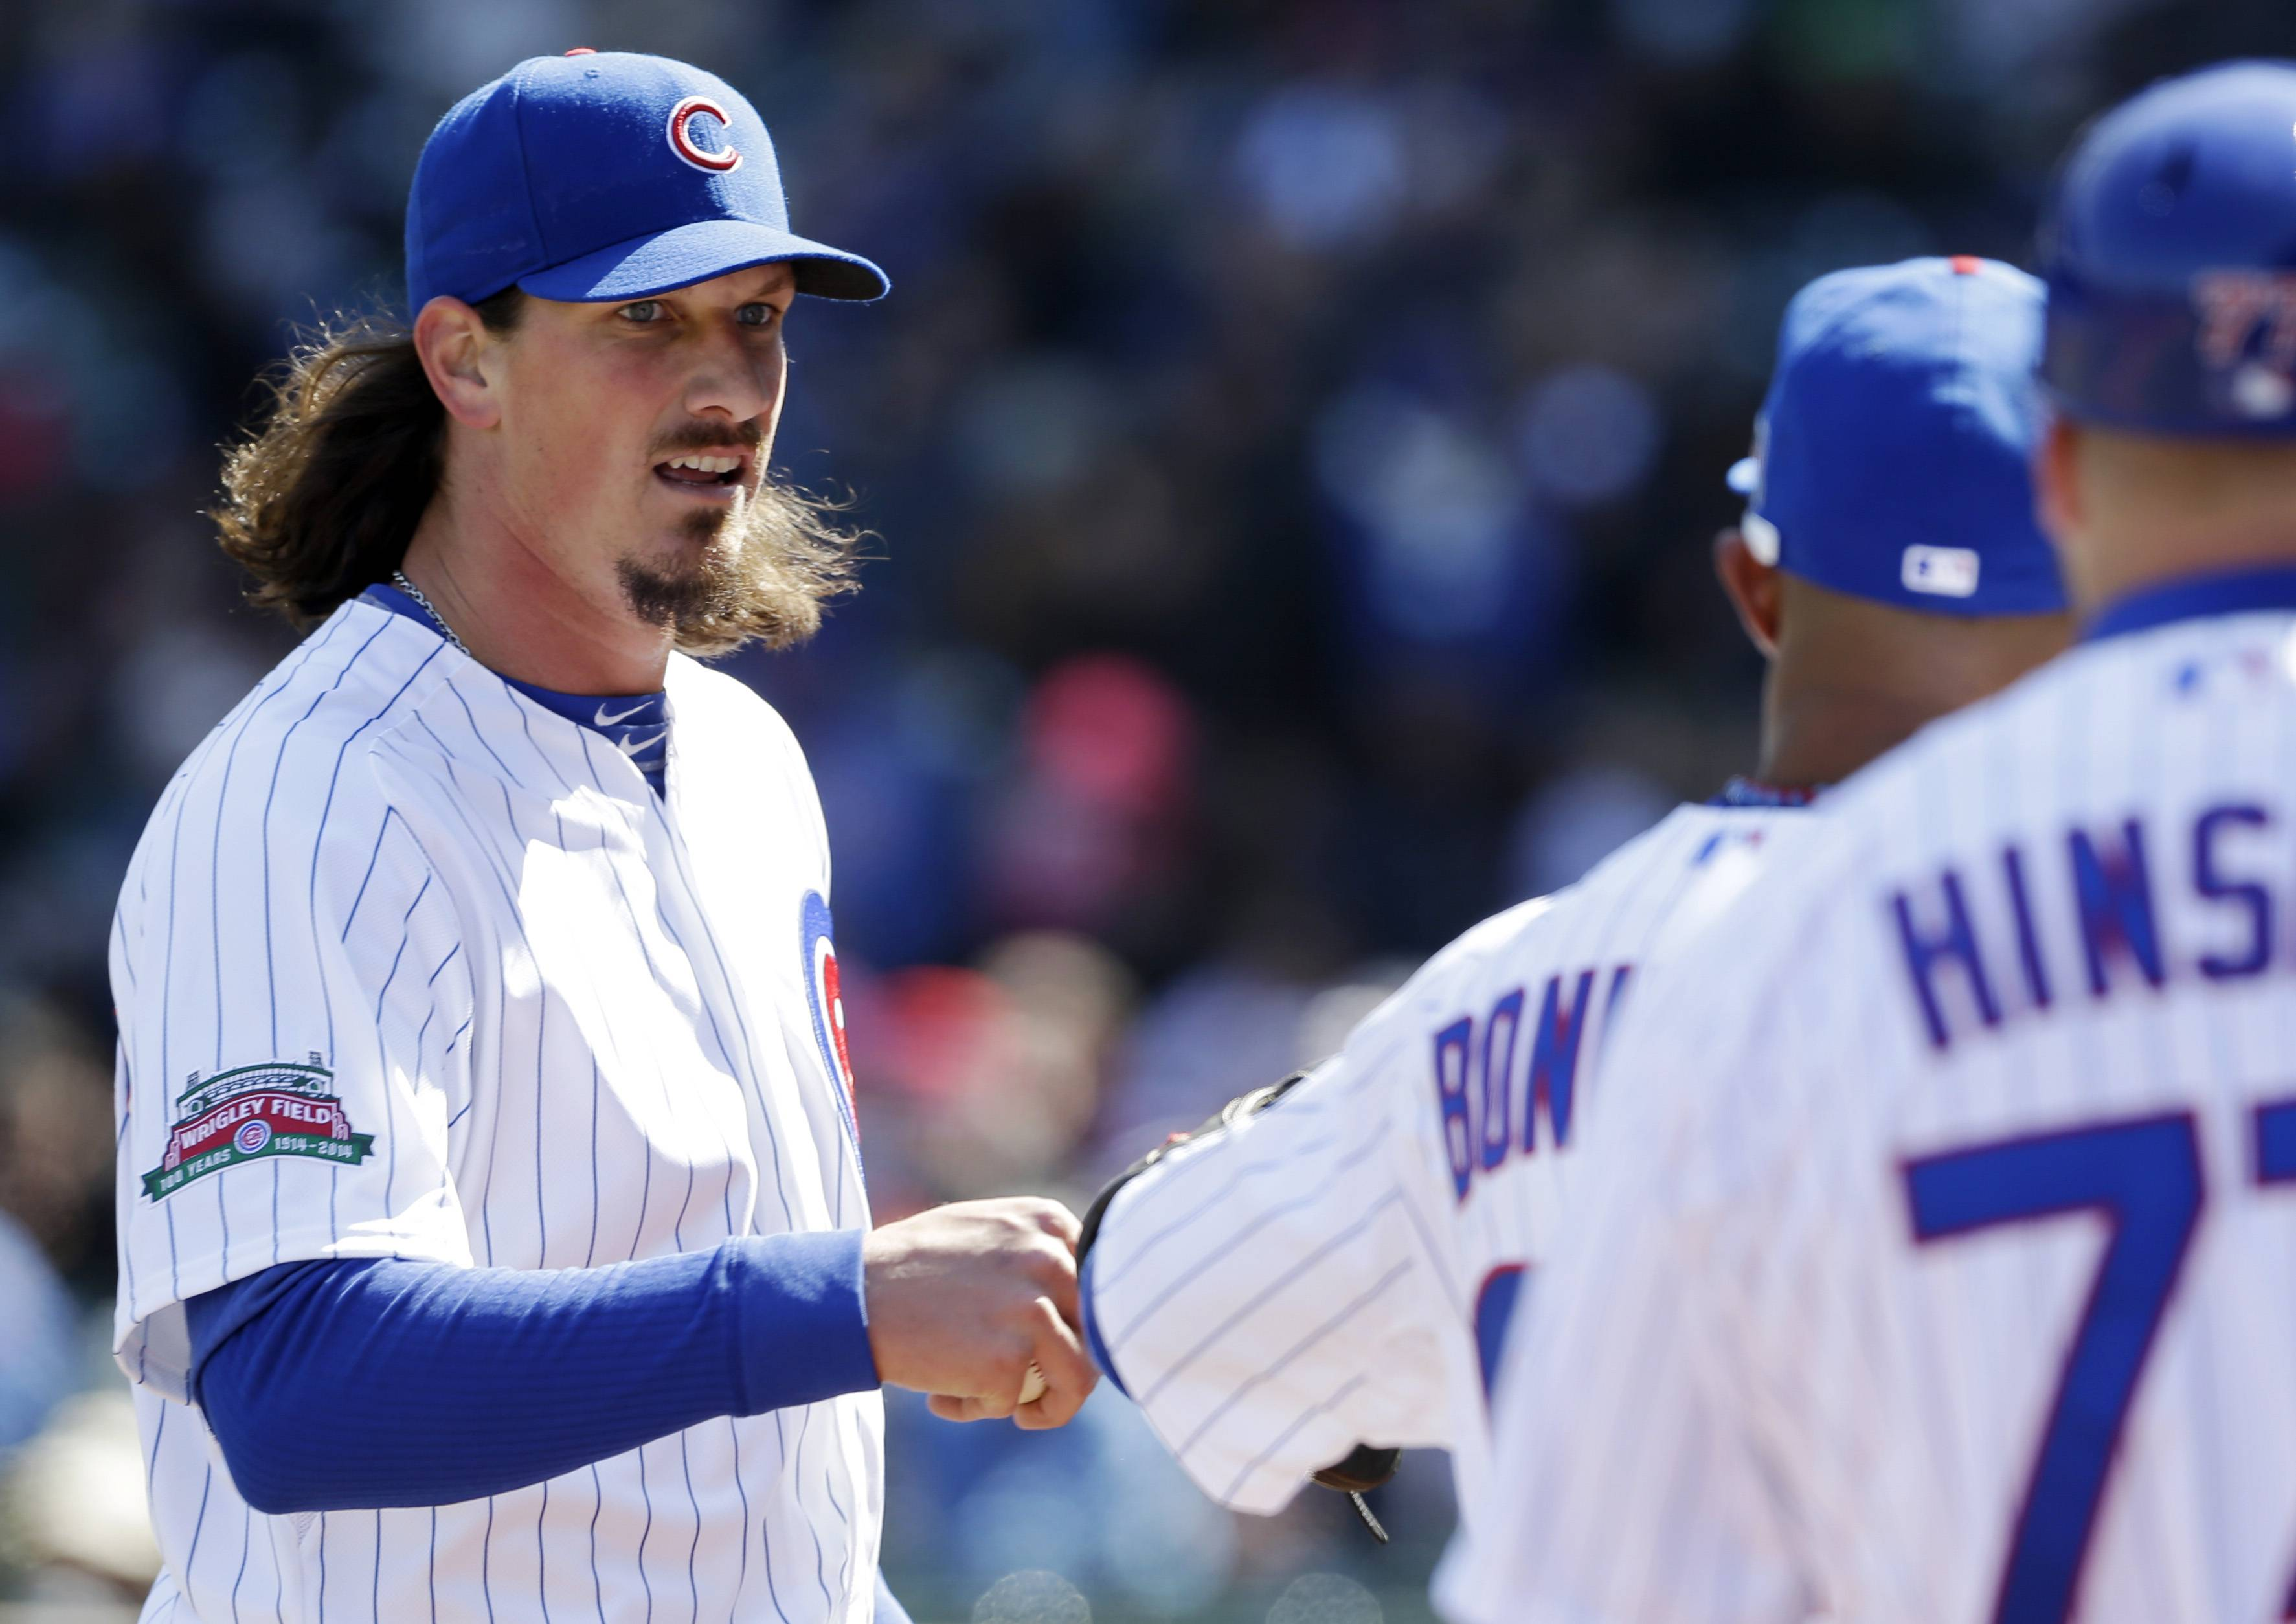 Chicago Cubs starter Jeff Samardzija, left, talks to Emilio Bonifacio as he walks walks back to the dugout during the third inning of a baseball game against the Philadelphia Phillies in Chicago, Saturday, April 5, 2014.